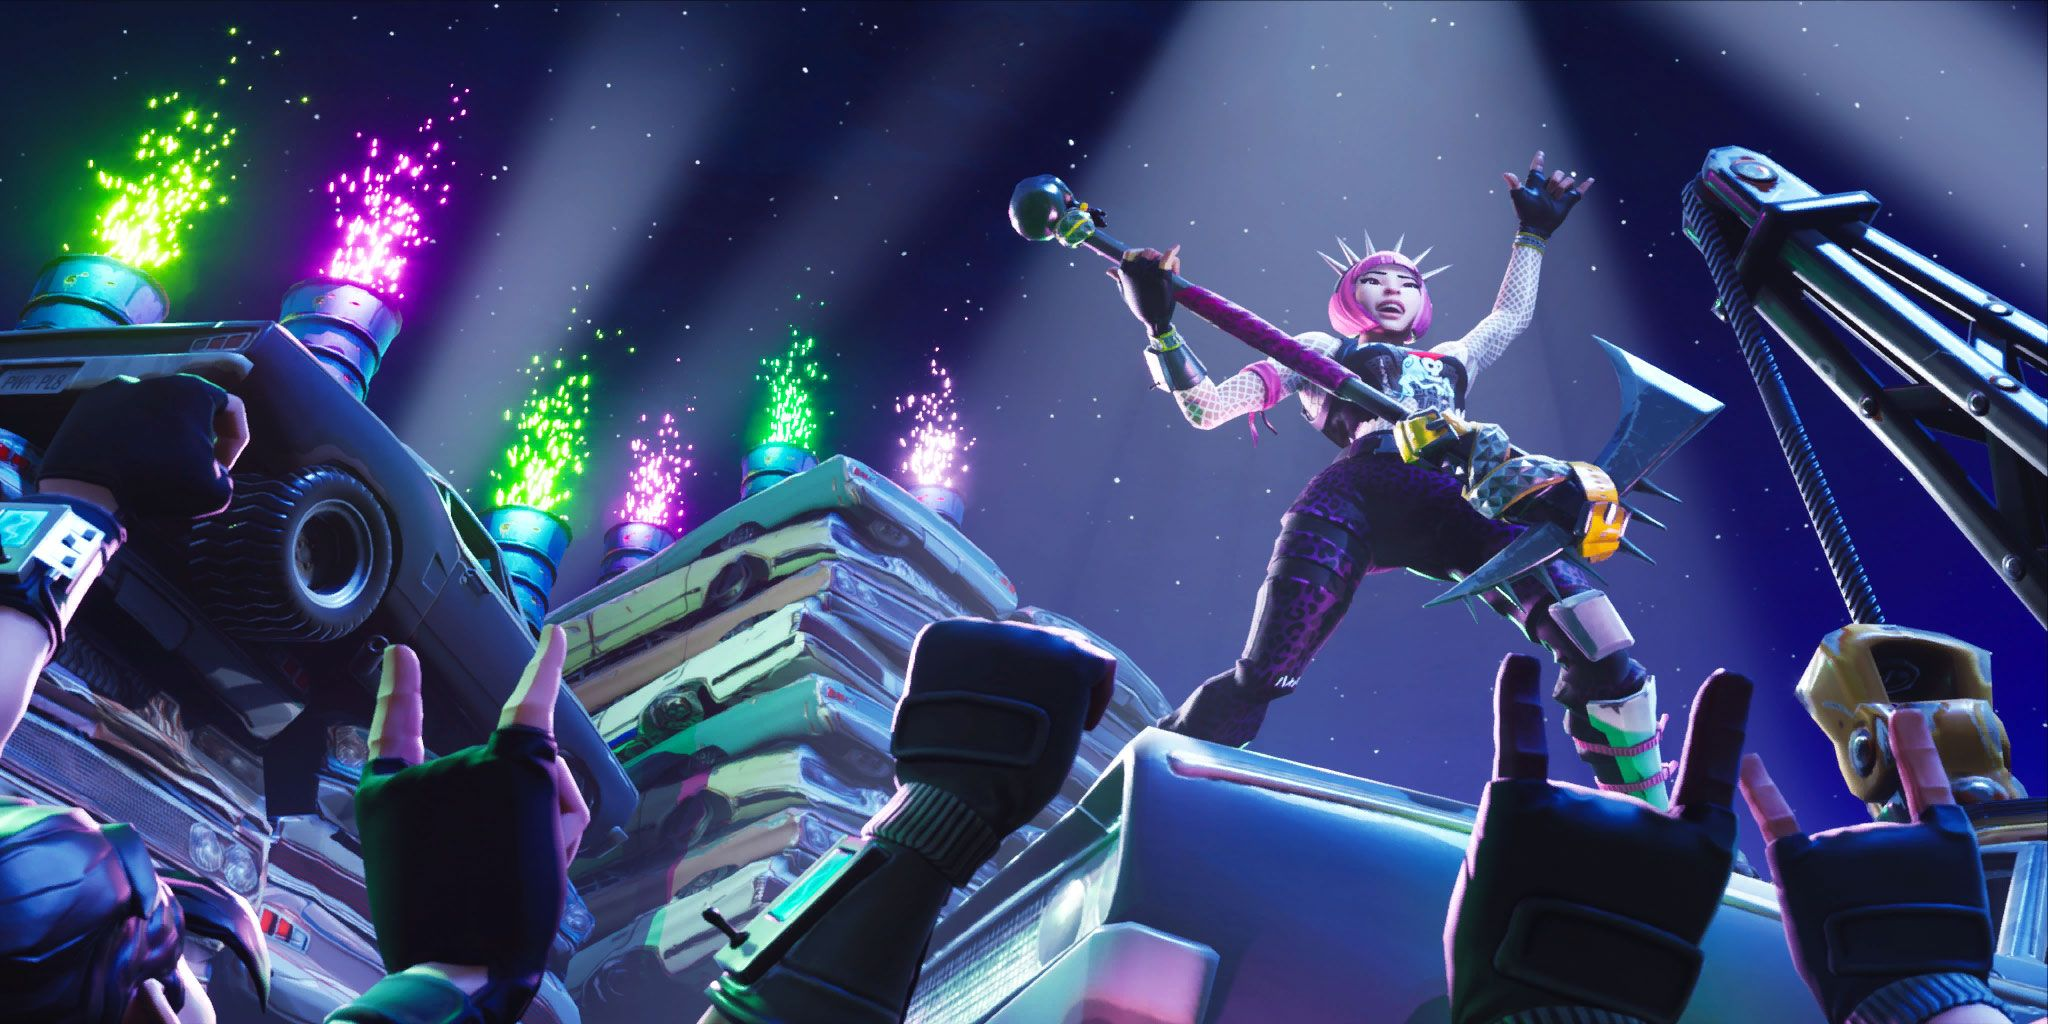 Fortnite Loading Screen Wallpaper Hd In 2020 Fortnite Epic Games Battle Royale Game